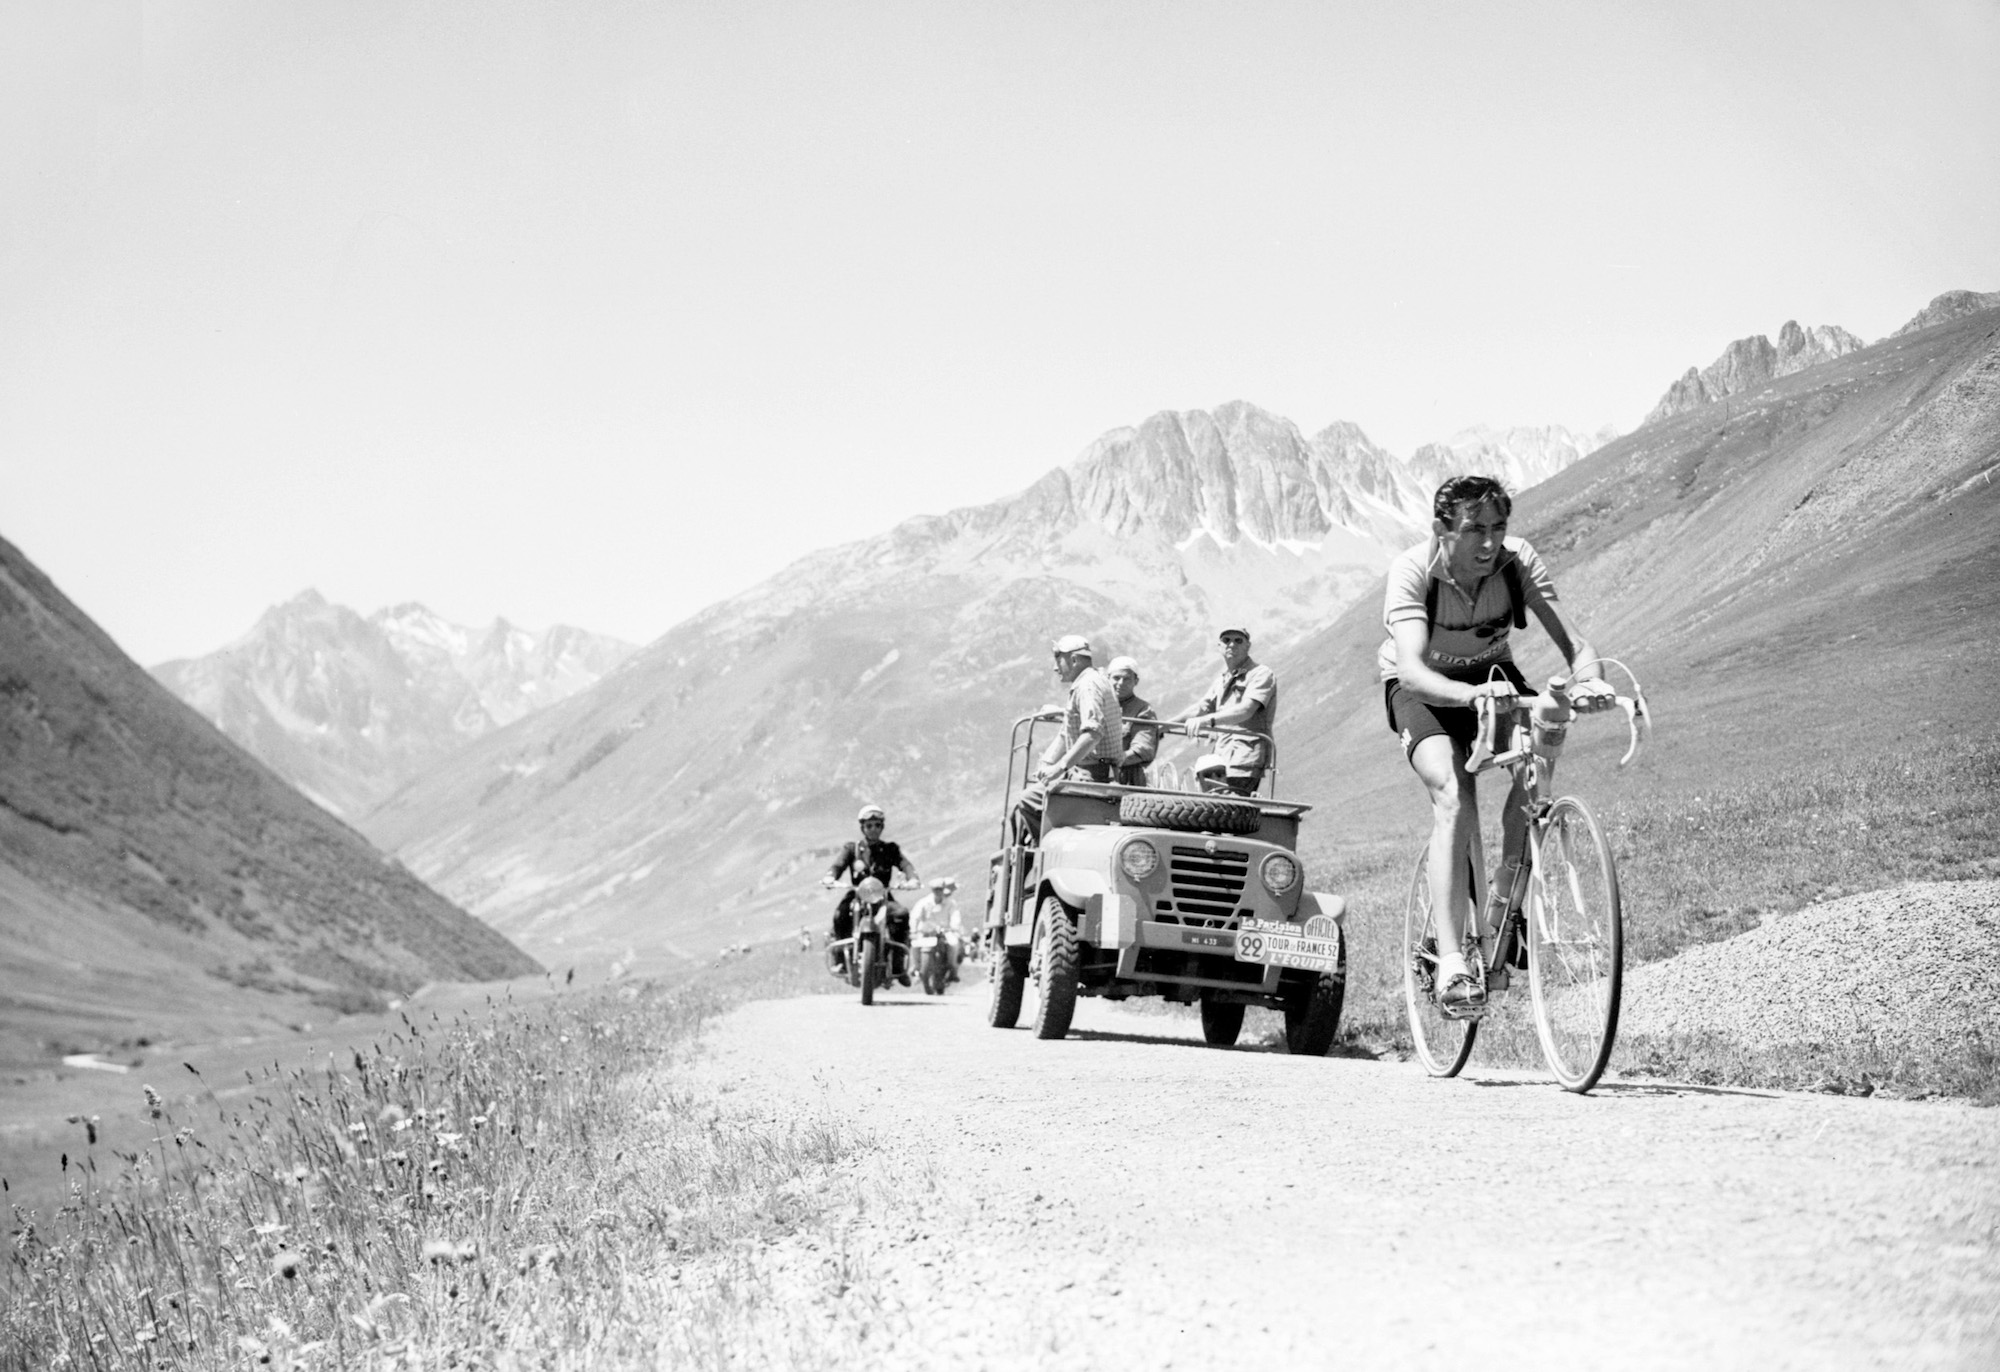 Fausto Coppi: A cycling icon like no other